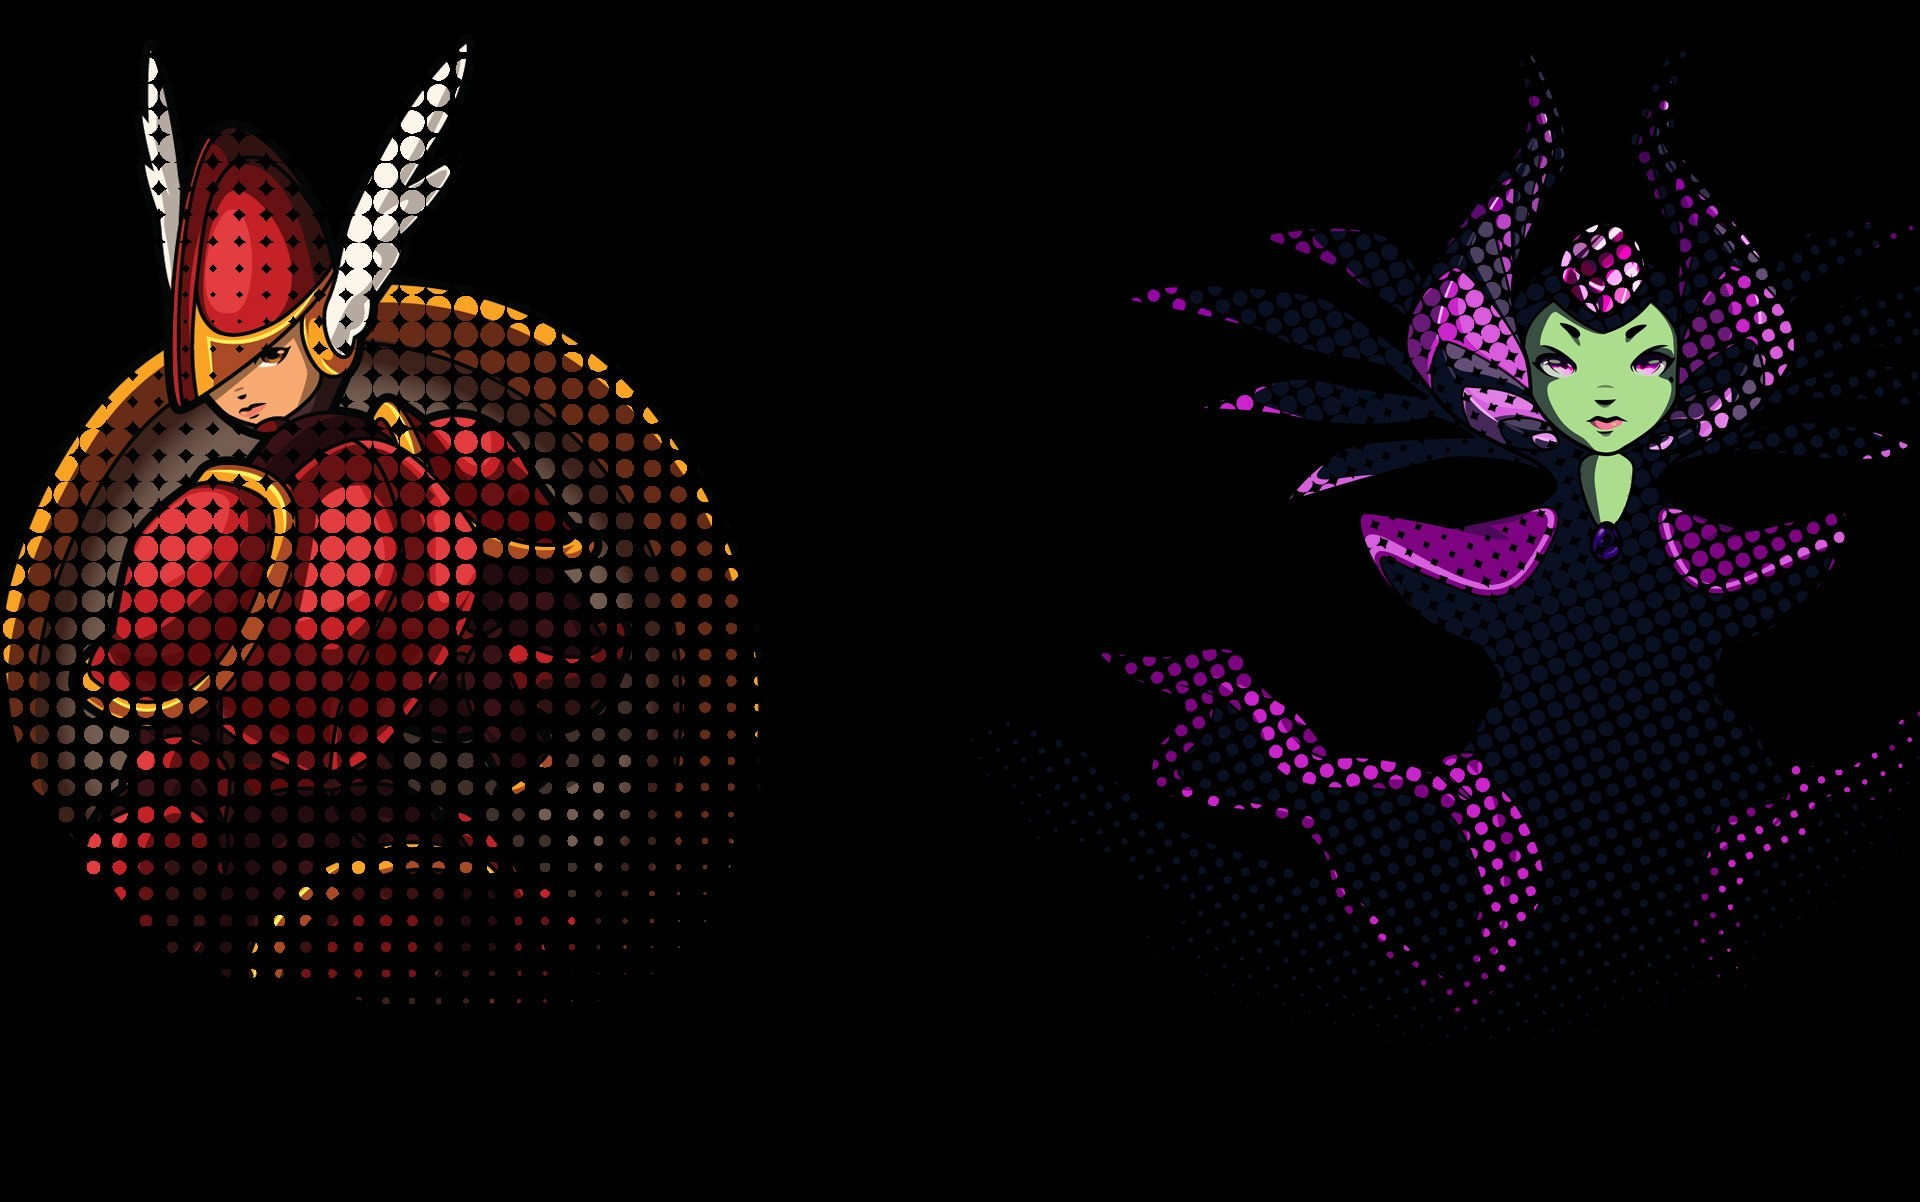 shovel knight picture: Wallpapers Collection by Tuesday Cook (2017-03-11)